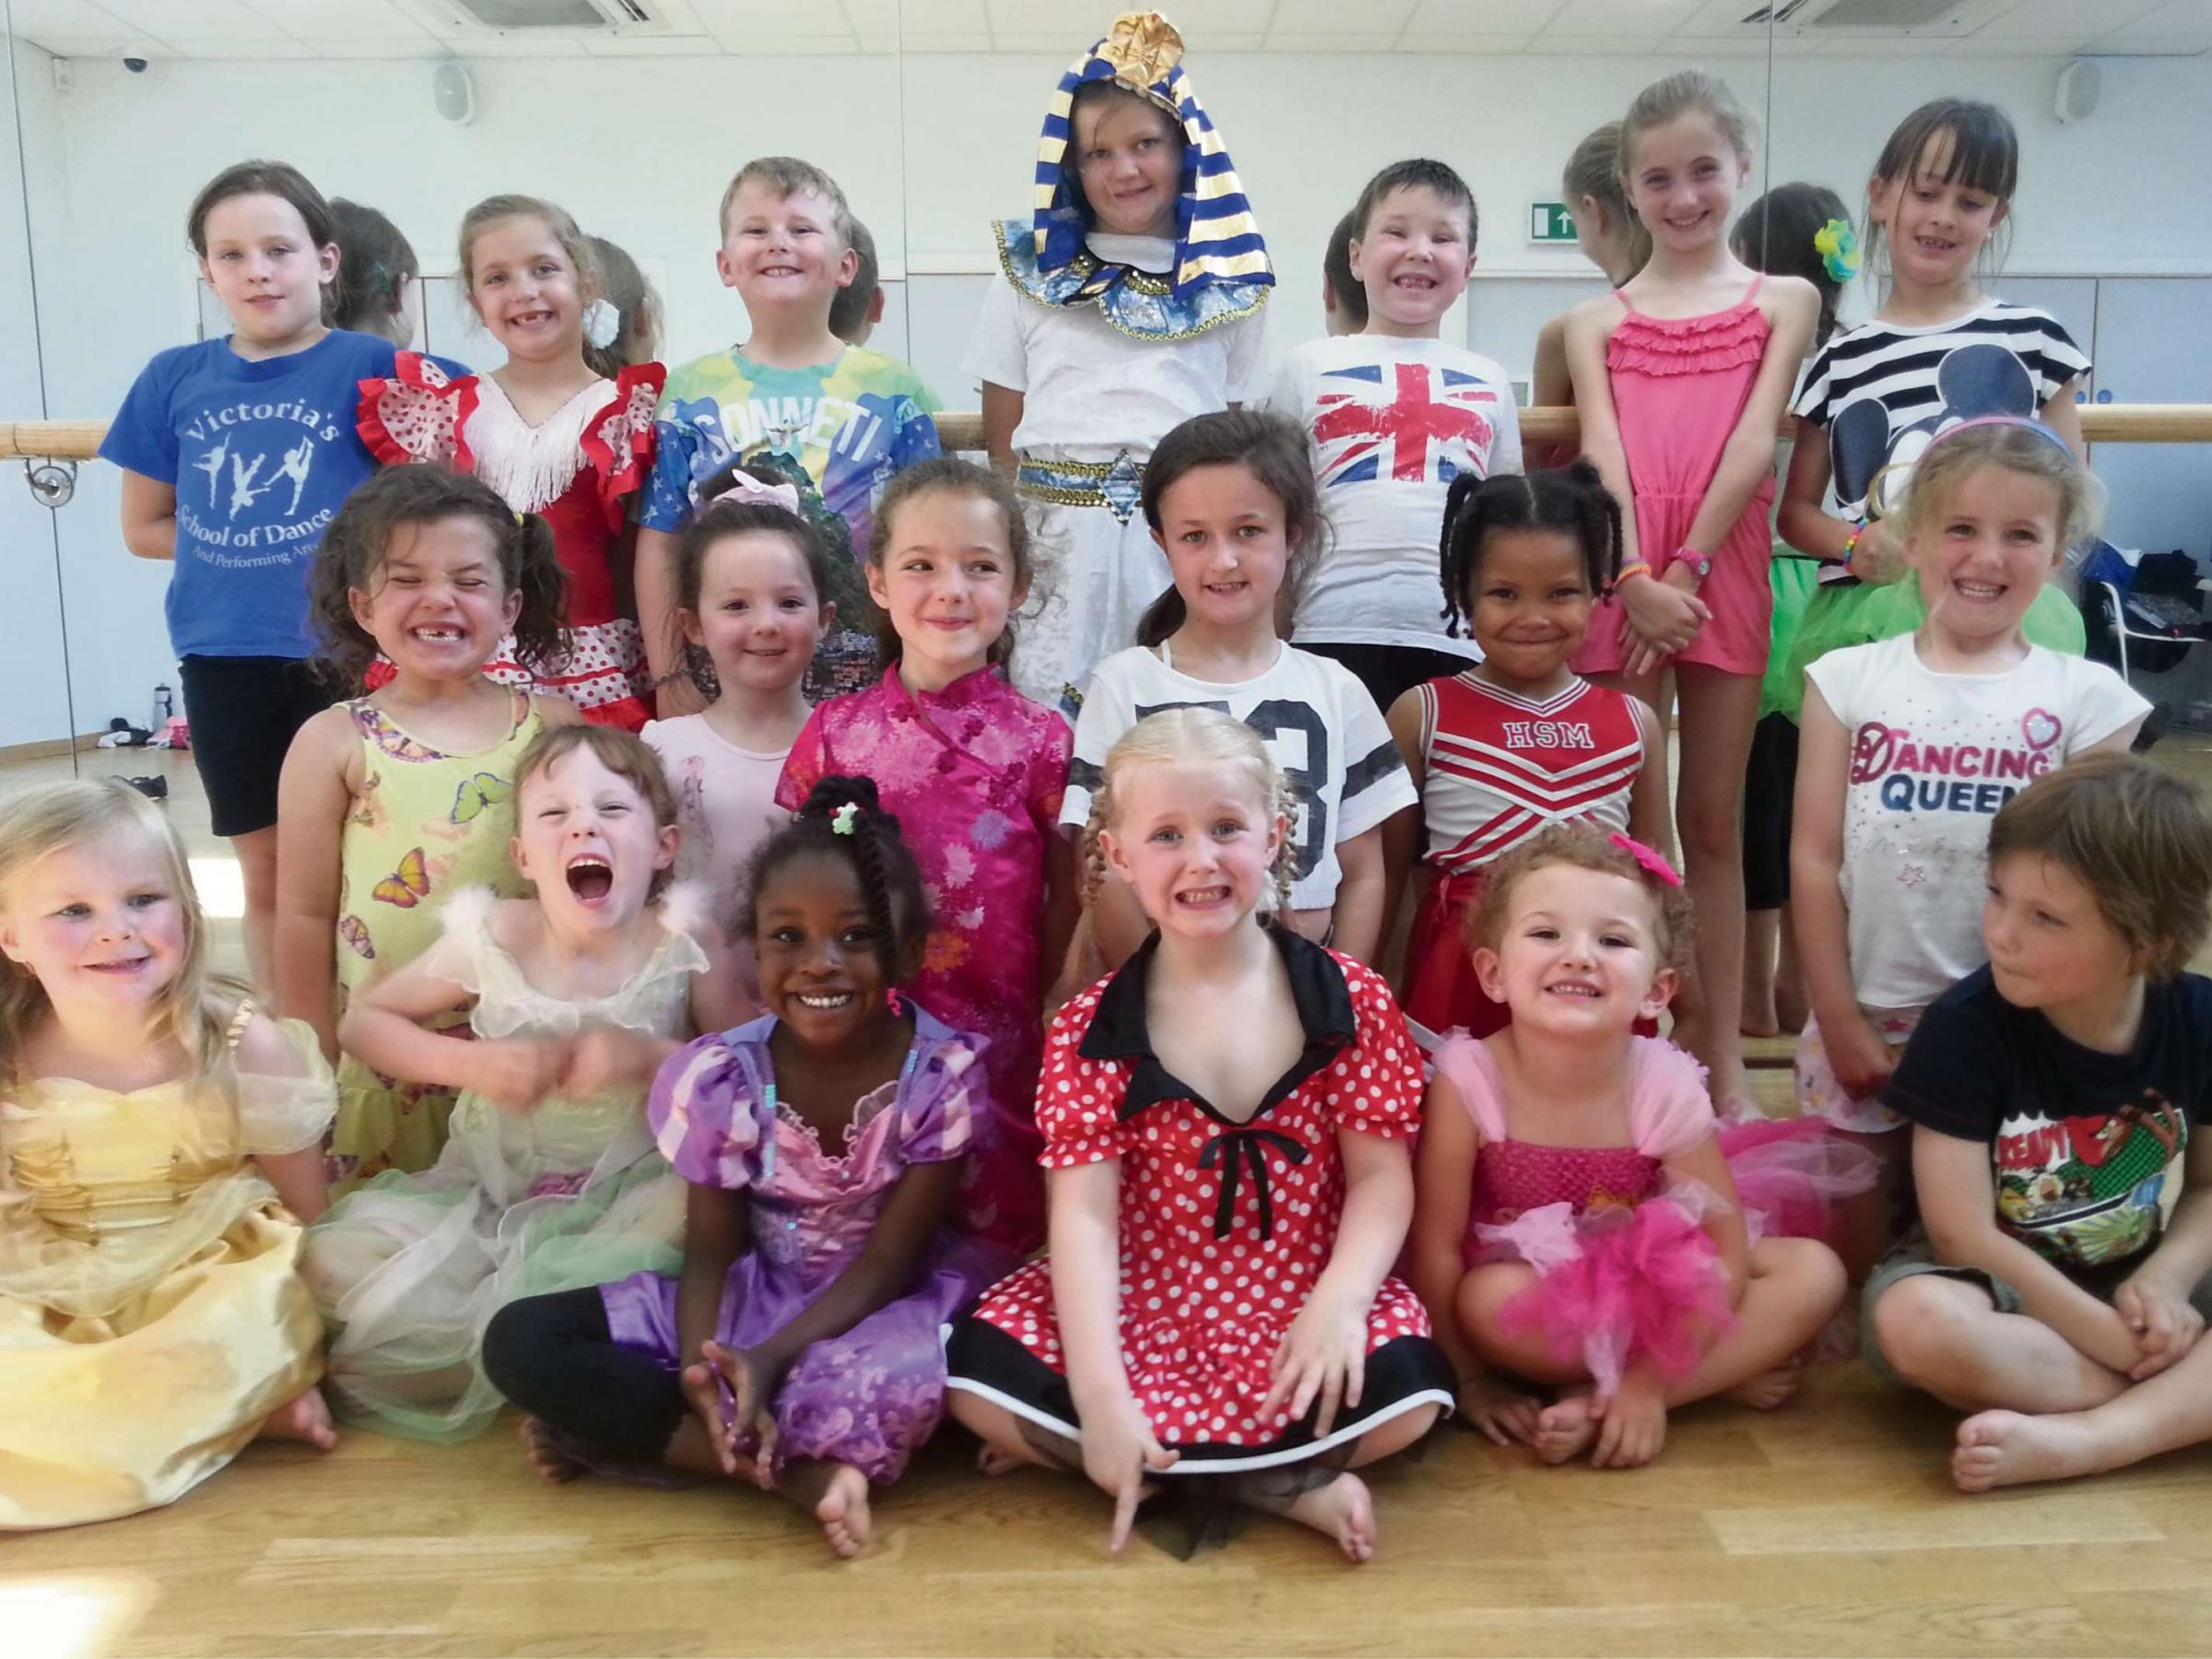 Children from Victoria's School of Dance and Performing Arts in Rednal, dressed up to dance.